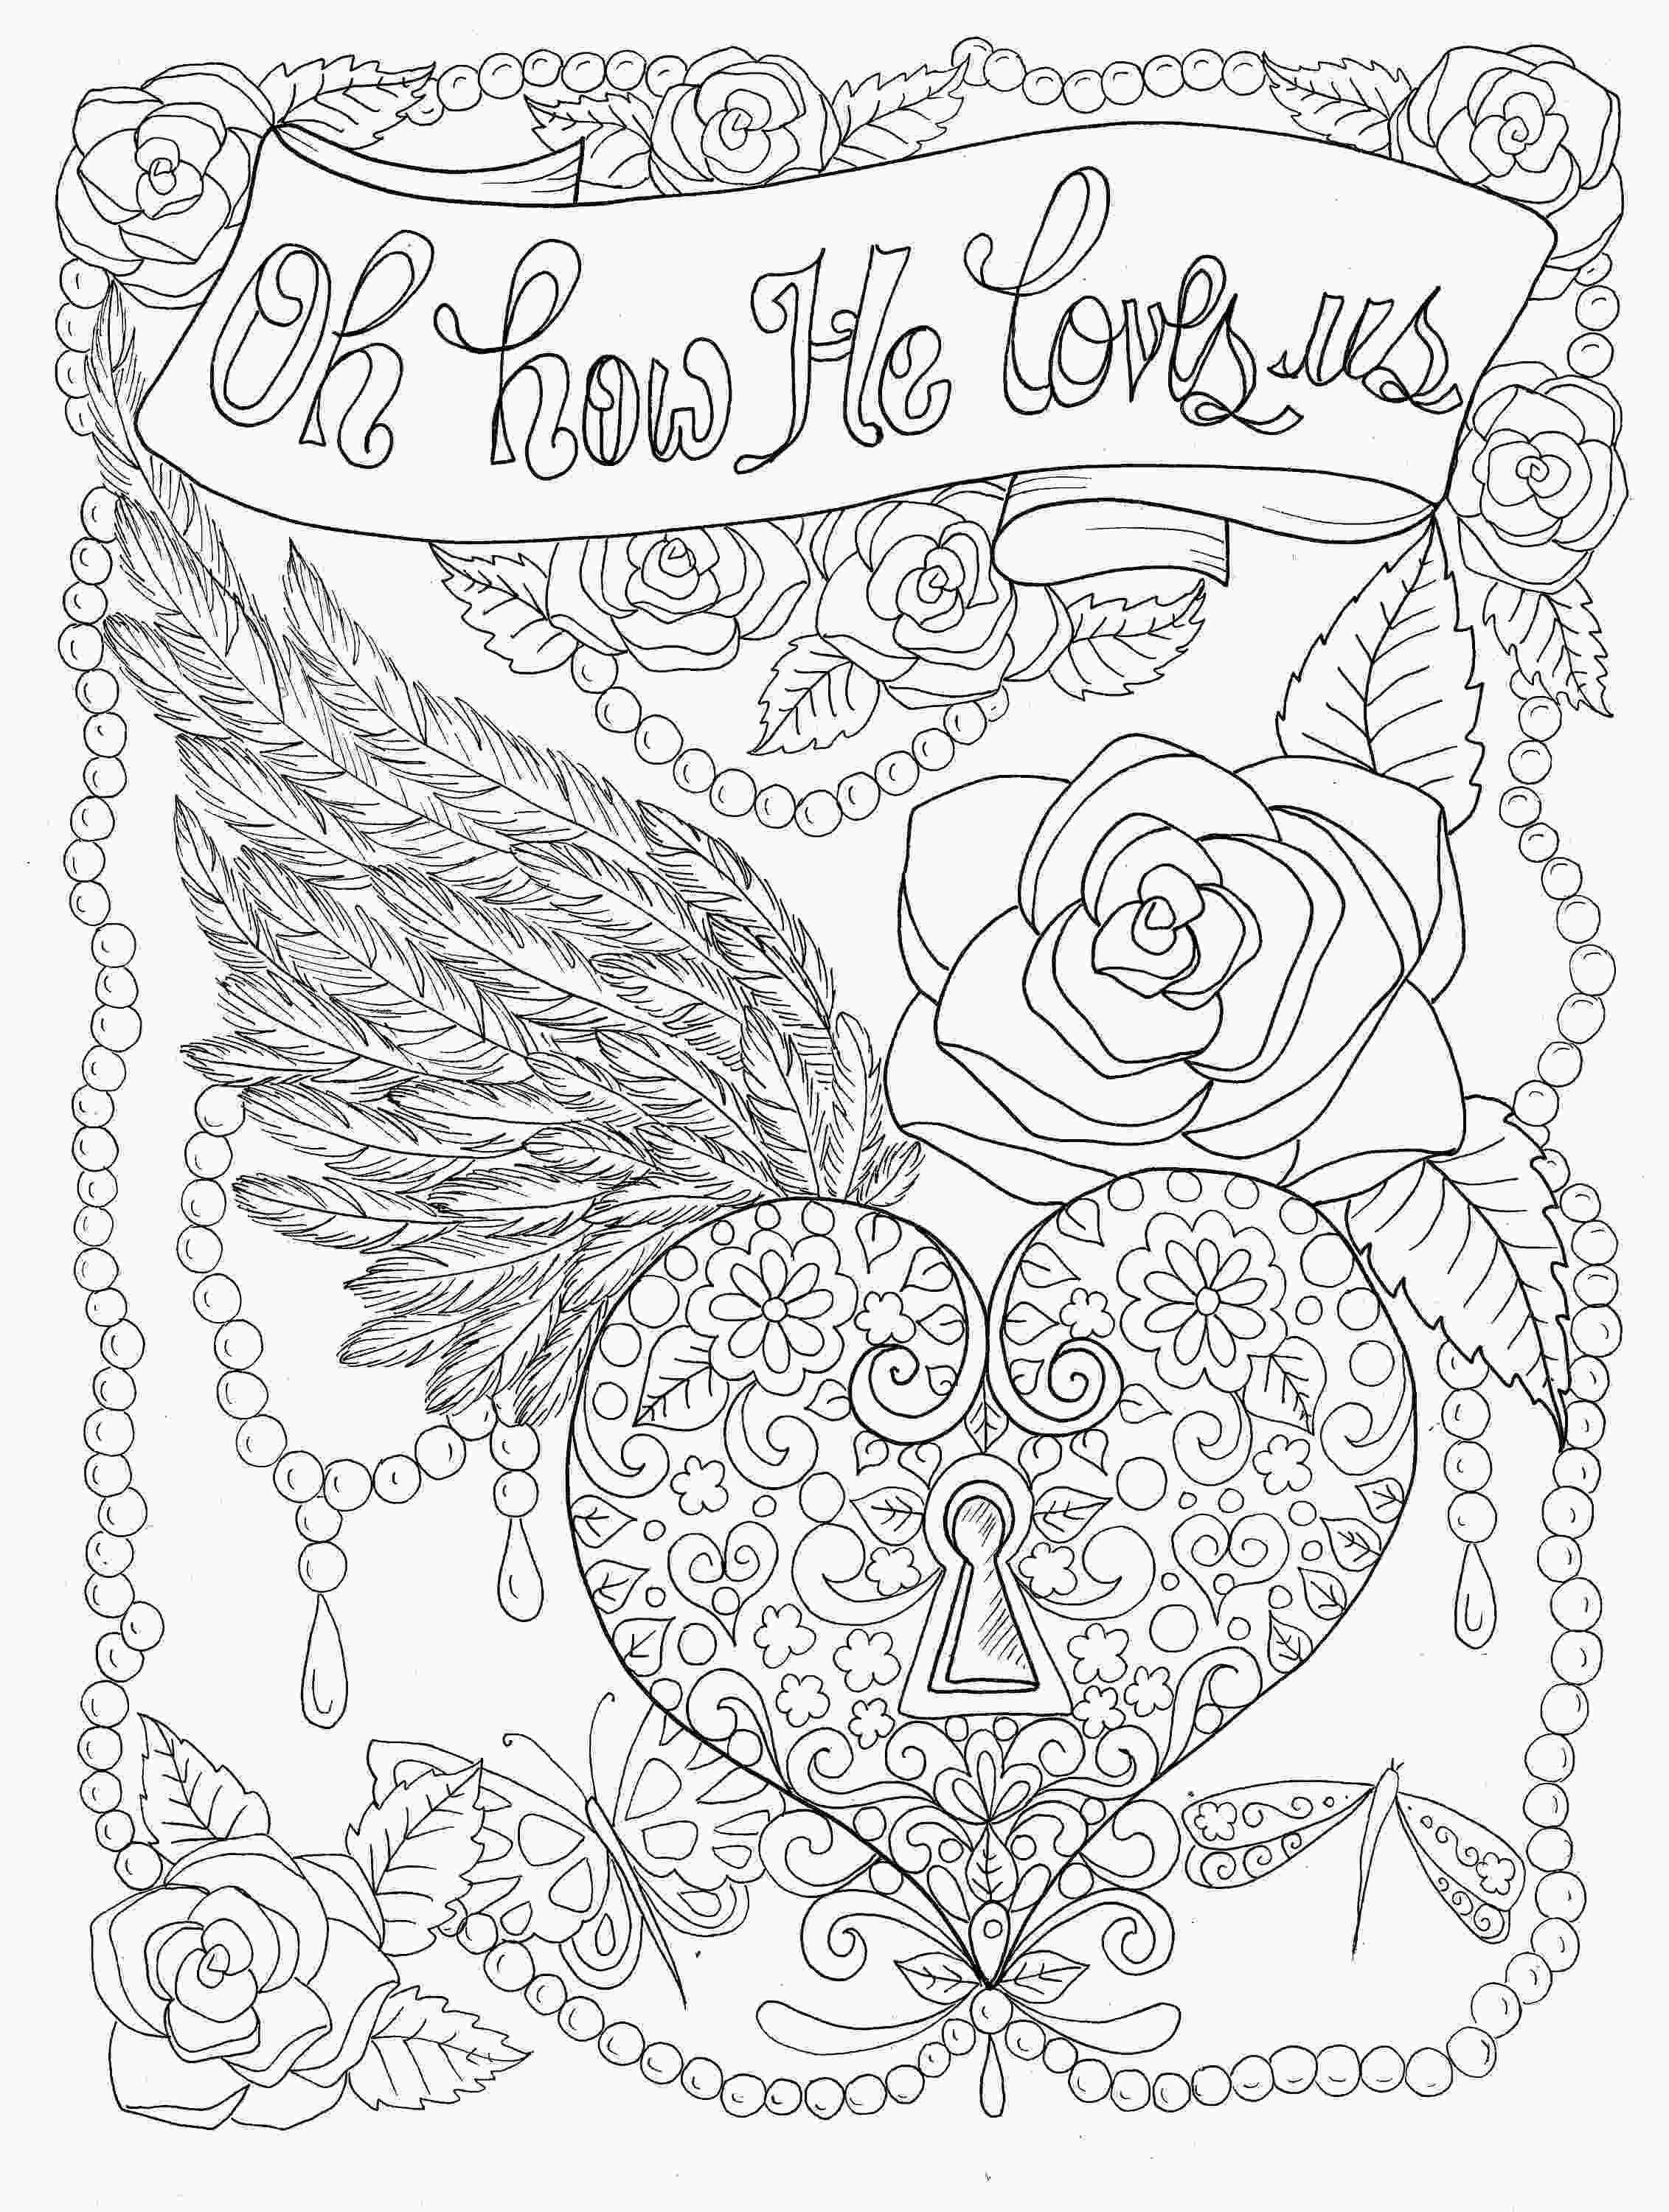 christian coloring pages christian worship coloring page instant downloadchurch